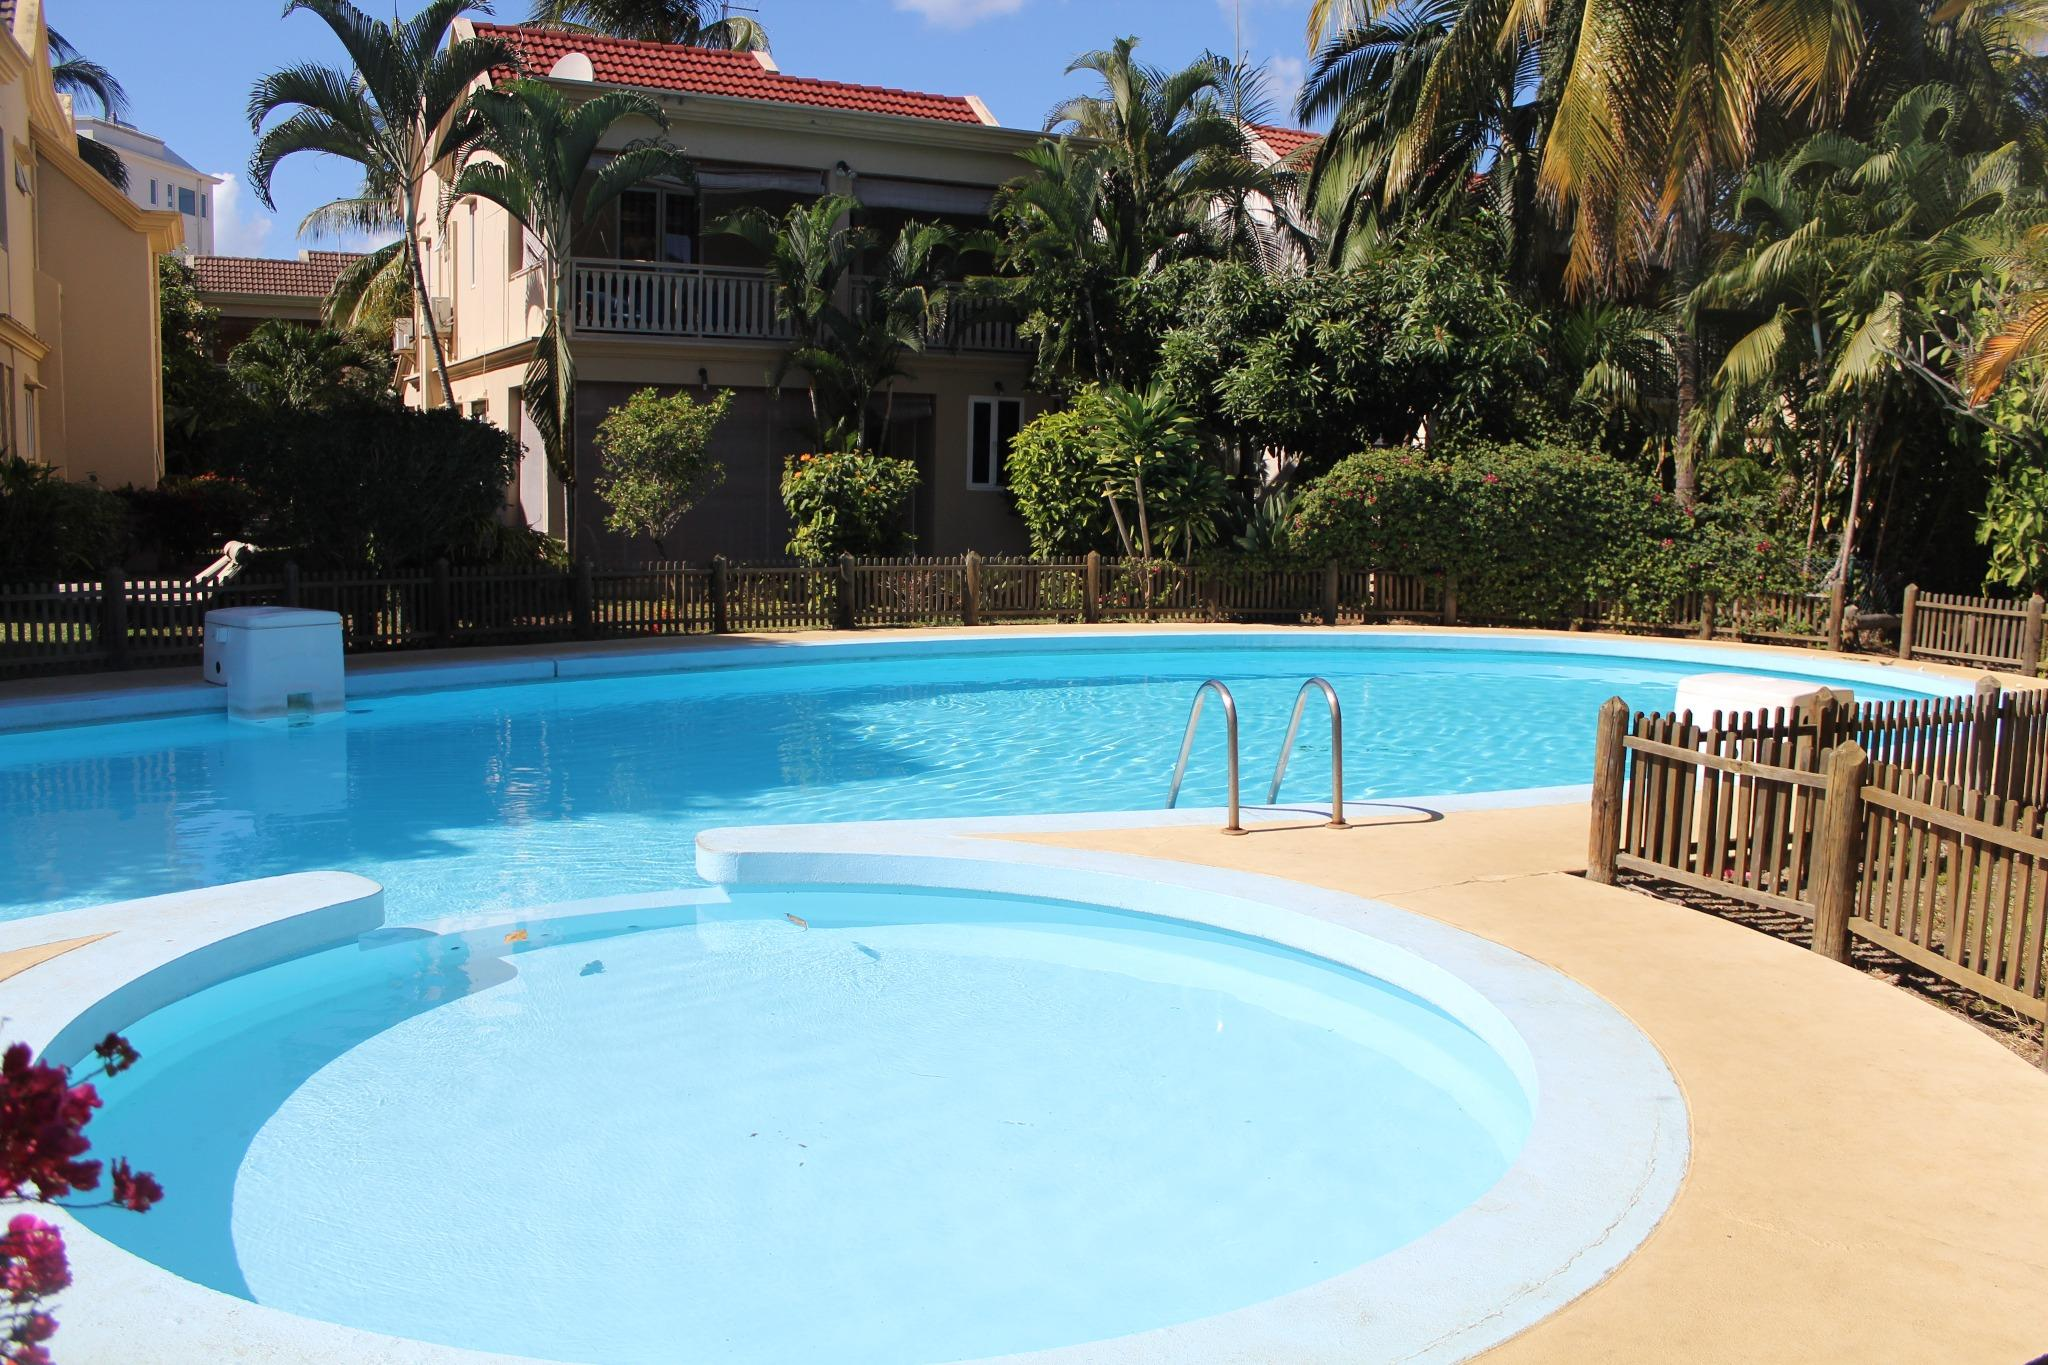 To rent – Beautiful house of 180 m2 in a 24/7 secured residence in Flic en Flac with direct access to the beach